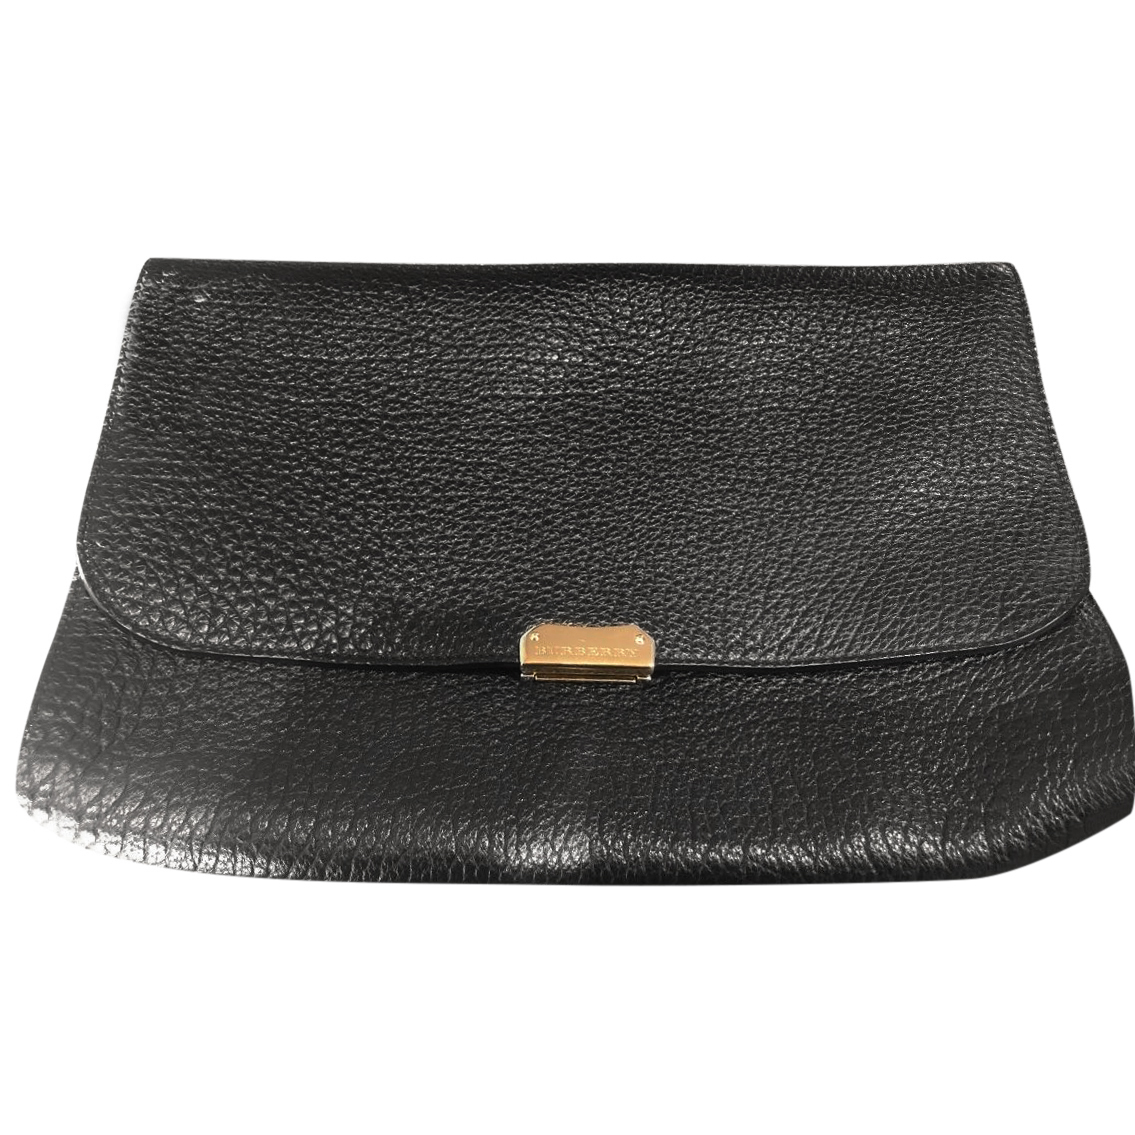 15f51932c4a4 Burberry Black Grained Leather Clutch